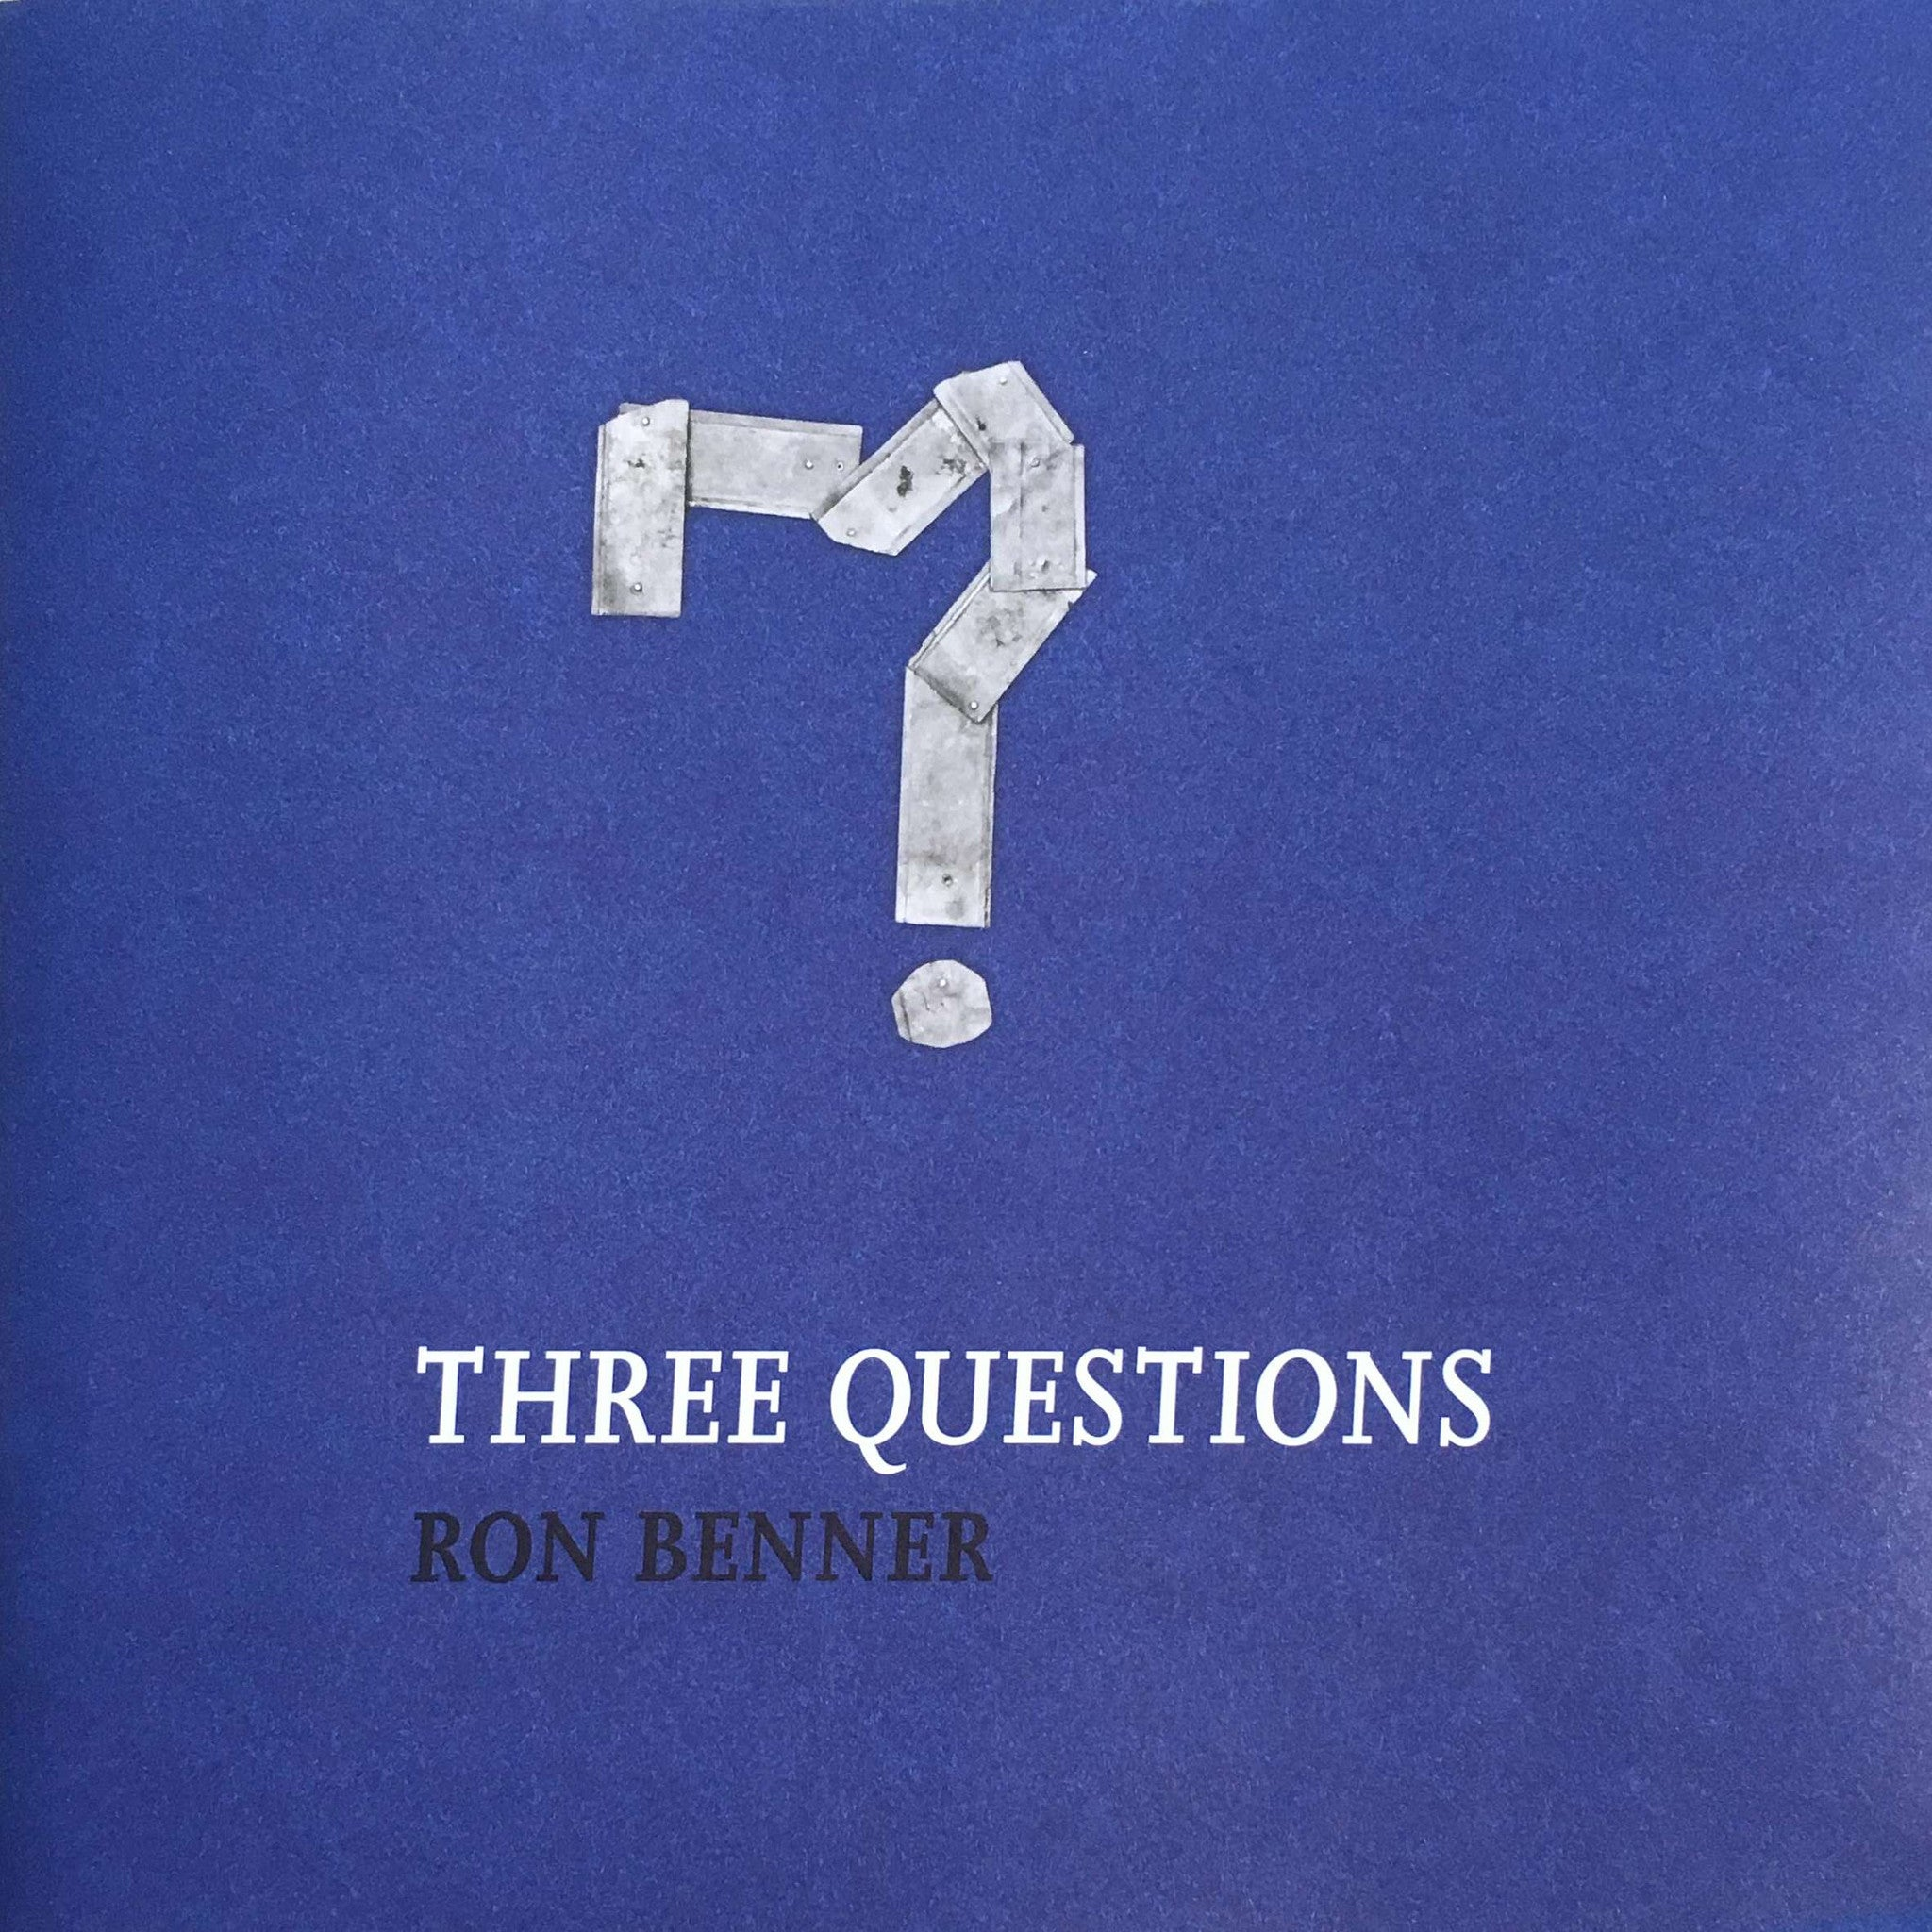 Three Questions by Ron Benner, Julian Jason (curator), Haladyn, Dot Tuer, Tony Weis